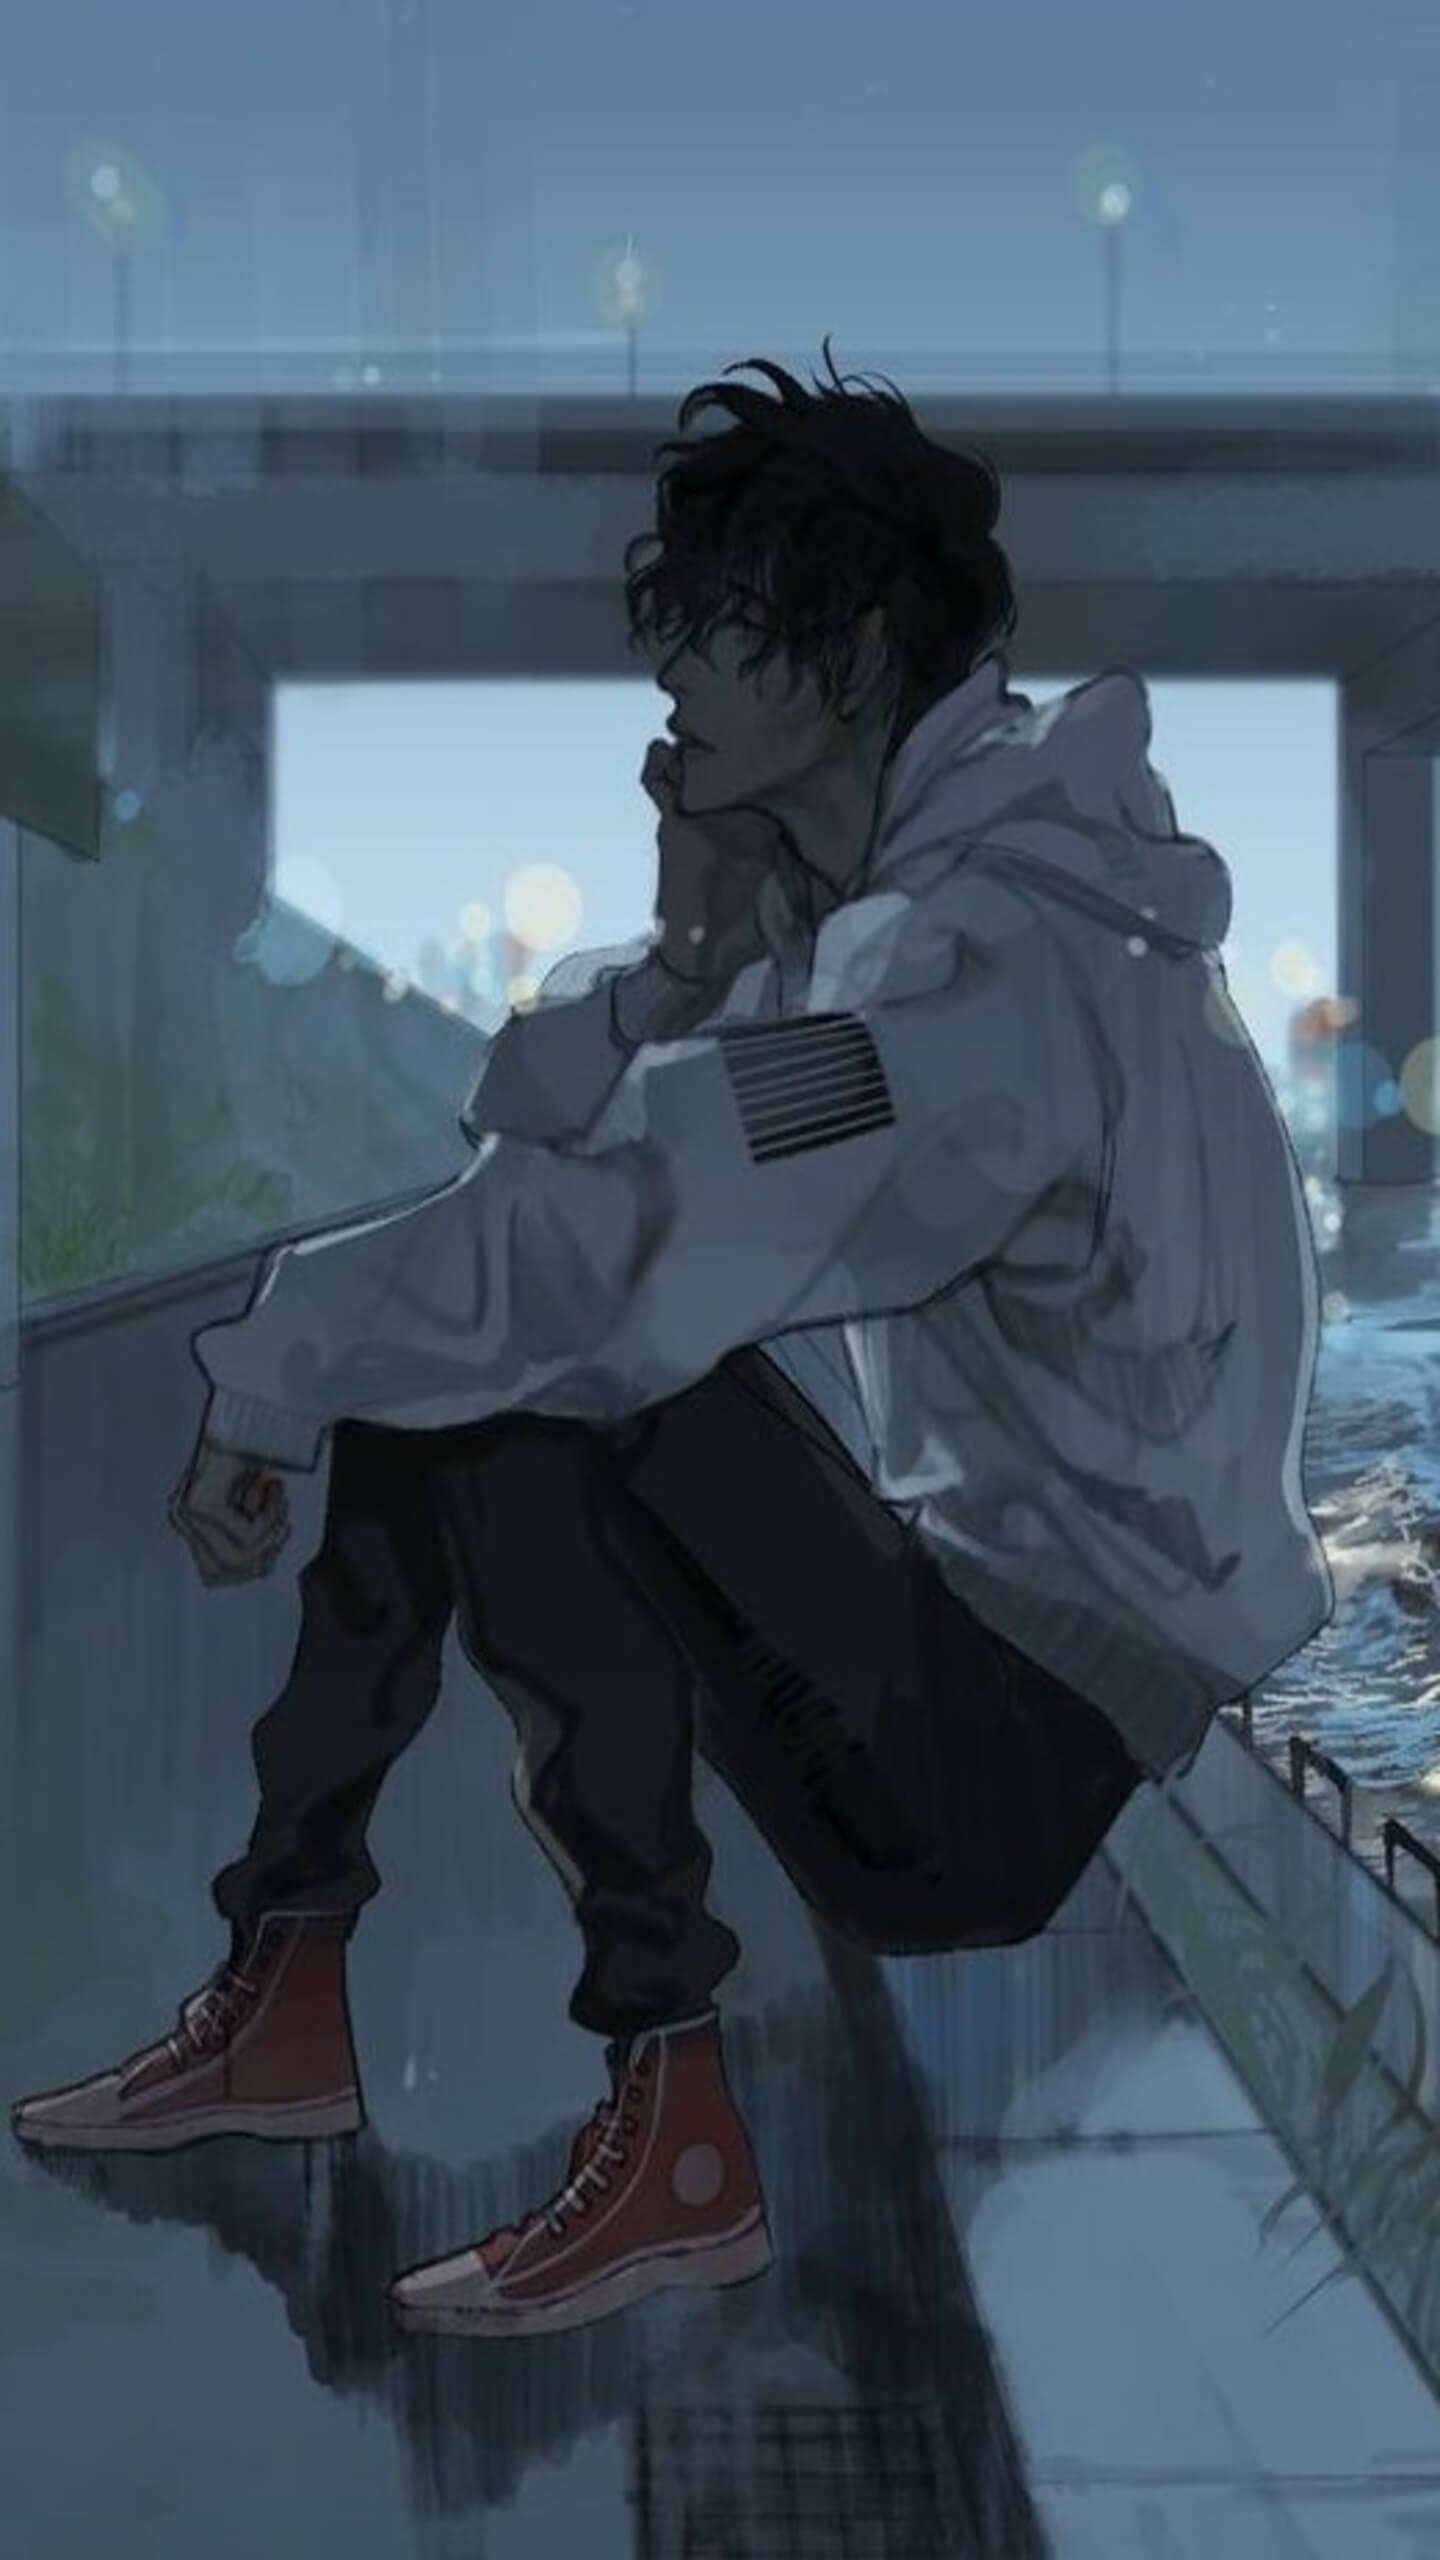 Sad Anime Profile Pictures Wallpapers